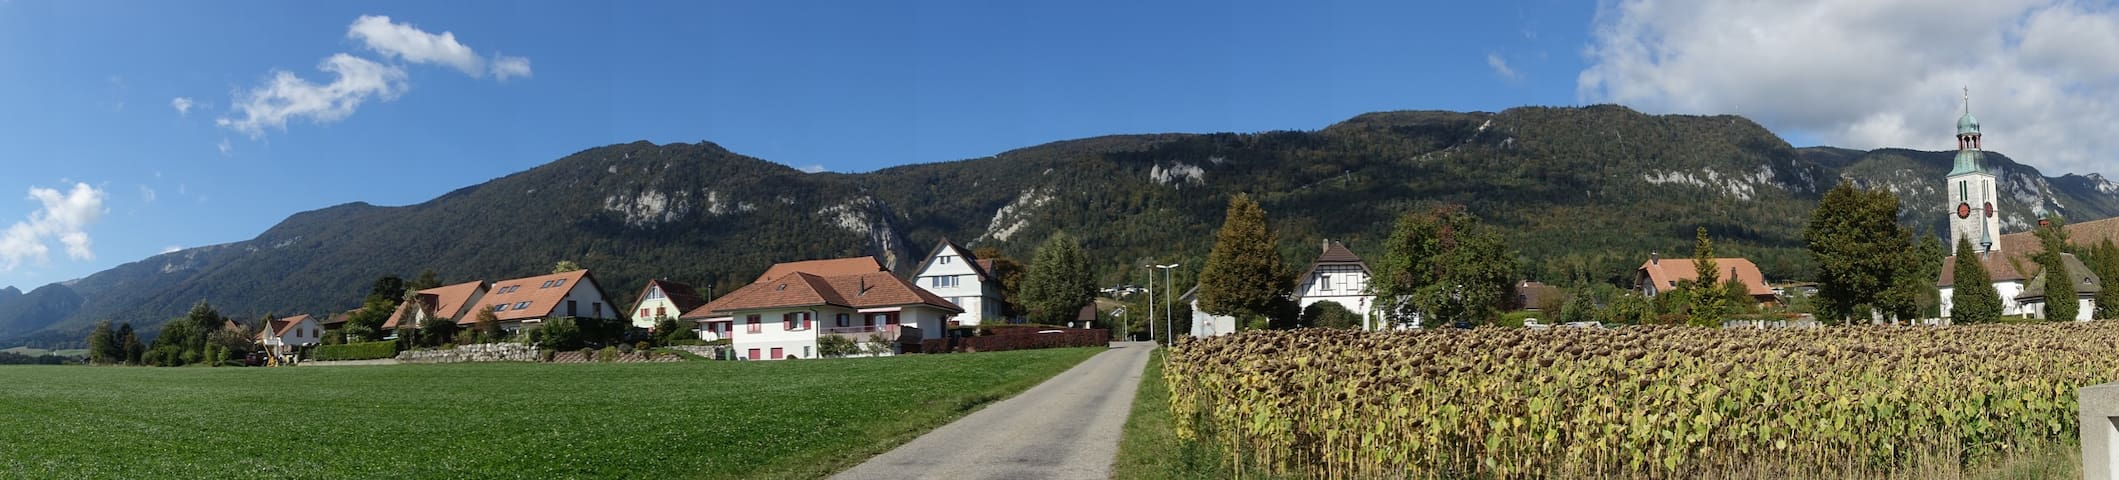 Swiss village apartment with breathtaking views - Oberdorf - Wohnung